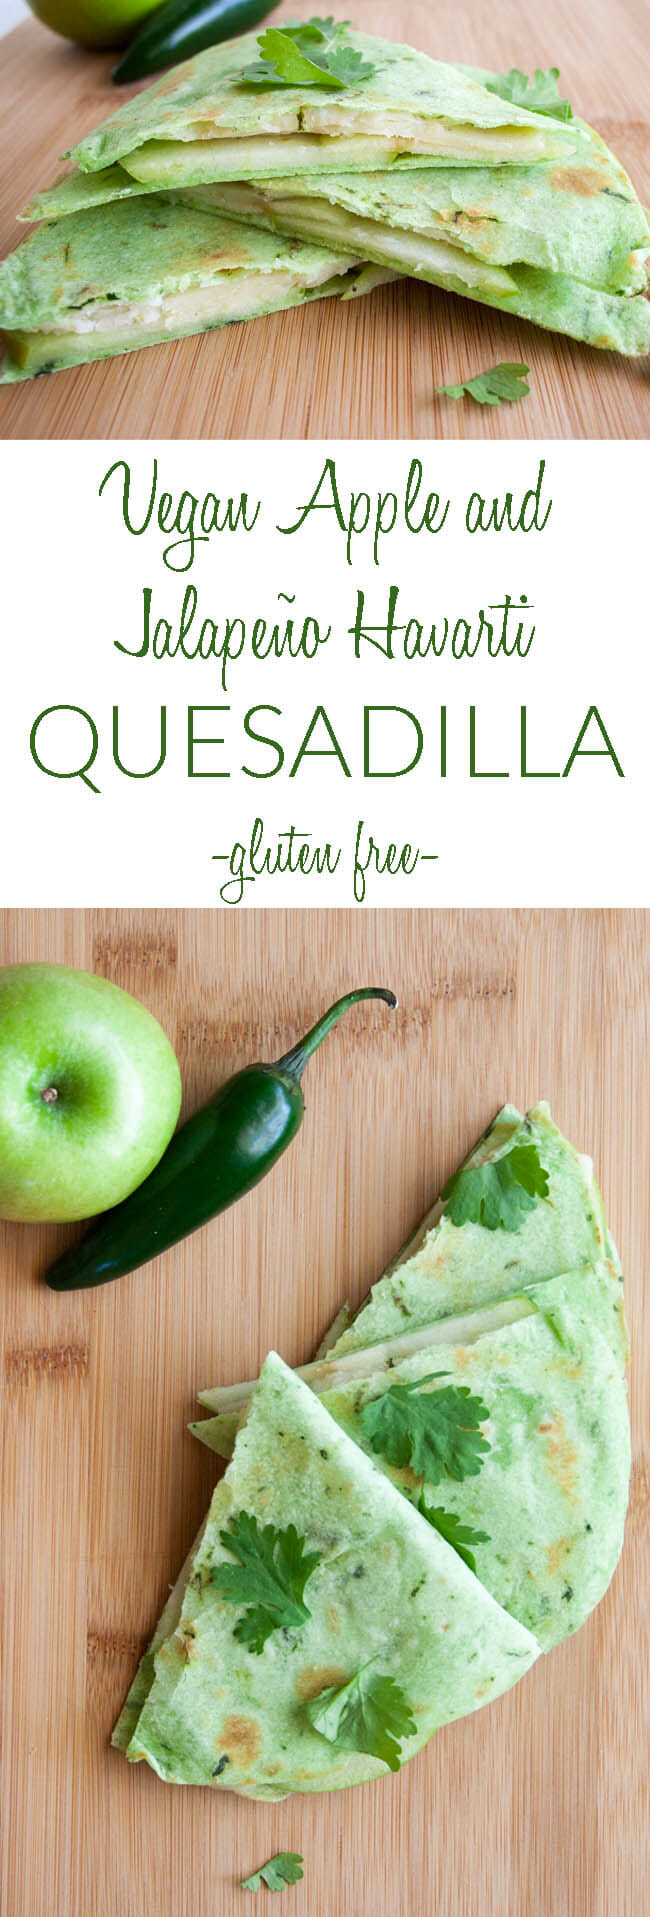 Vegan Apple and Jalapeño Havarti Quesadilla collage photo with text.